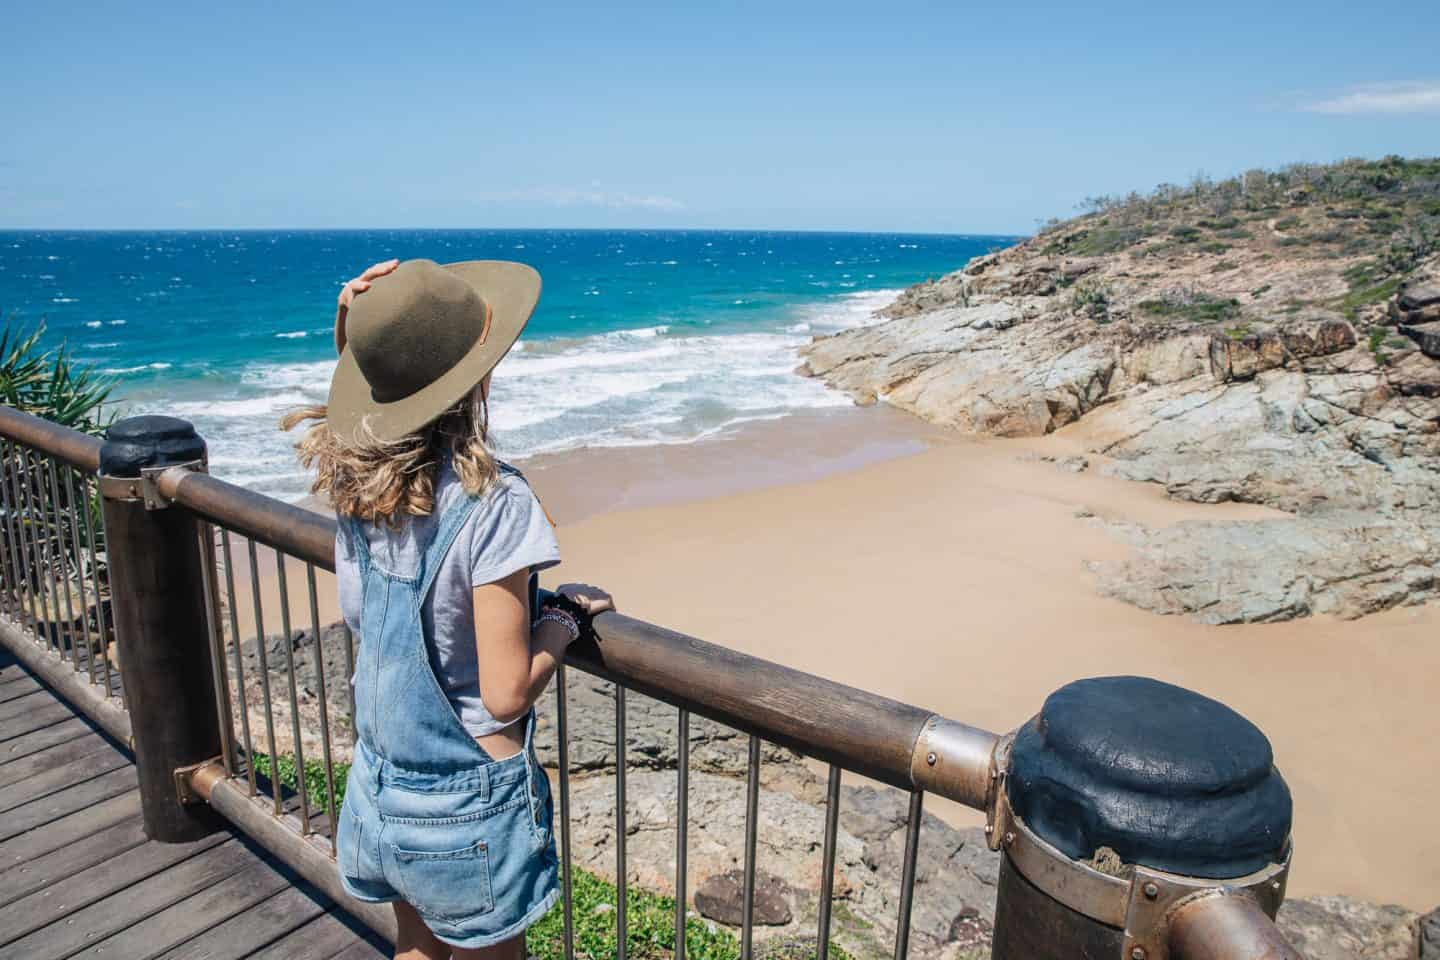 agnes water, agnes waters, things to do in agnes waters, hings to do in agnes water, surfing agnes water, seventeen seventy queensland, seventeen seventy camping, seventeen seventy australia, seventeen seventy, agnes waters things to do, agnes waters map, agnes waters caravan park, agnes waters beach, agnes waters accommodation, agnes water surfing, agnes water surf cam, agnes water queensland, agnes water qld, agnes water caravan park, agnes water camping, agnes water beach, camping ground agnes water, wave lookout, wave lookout 1770